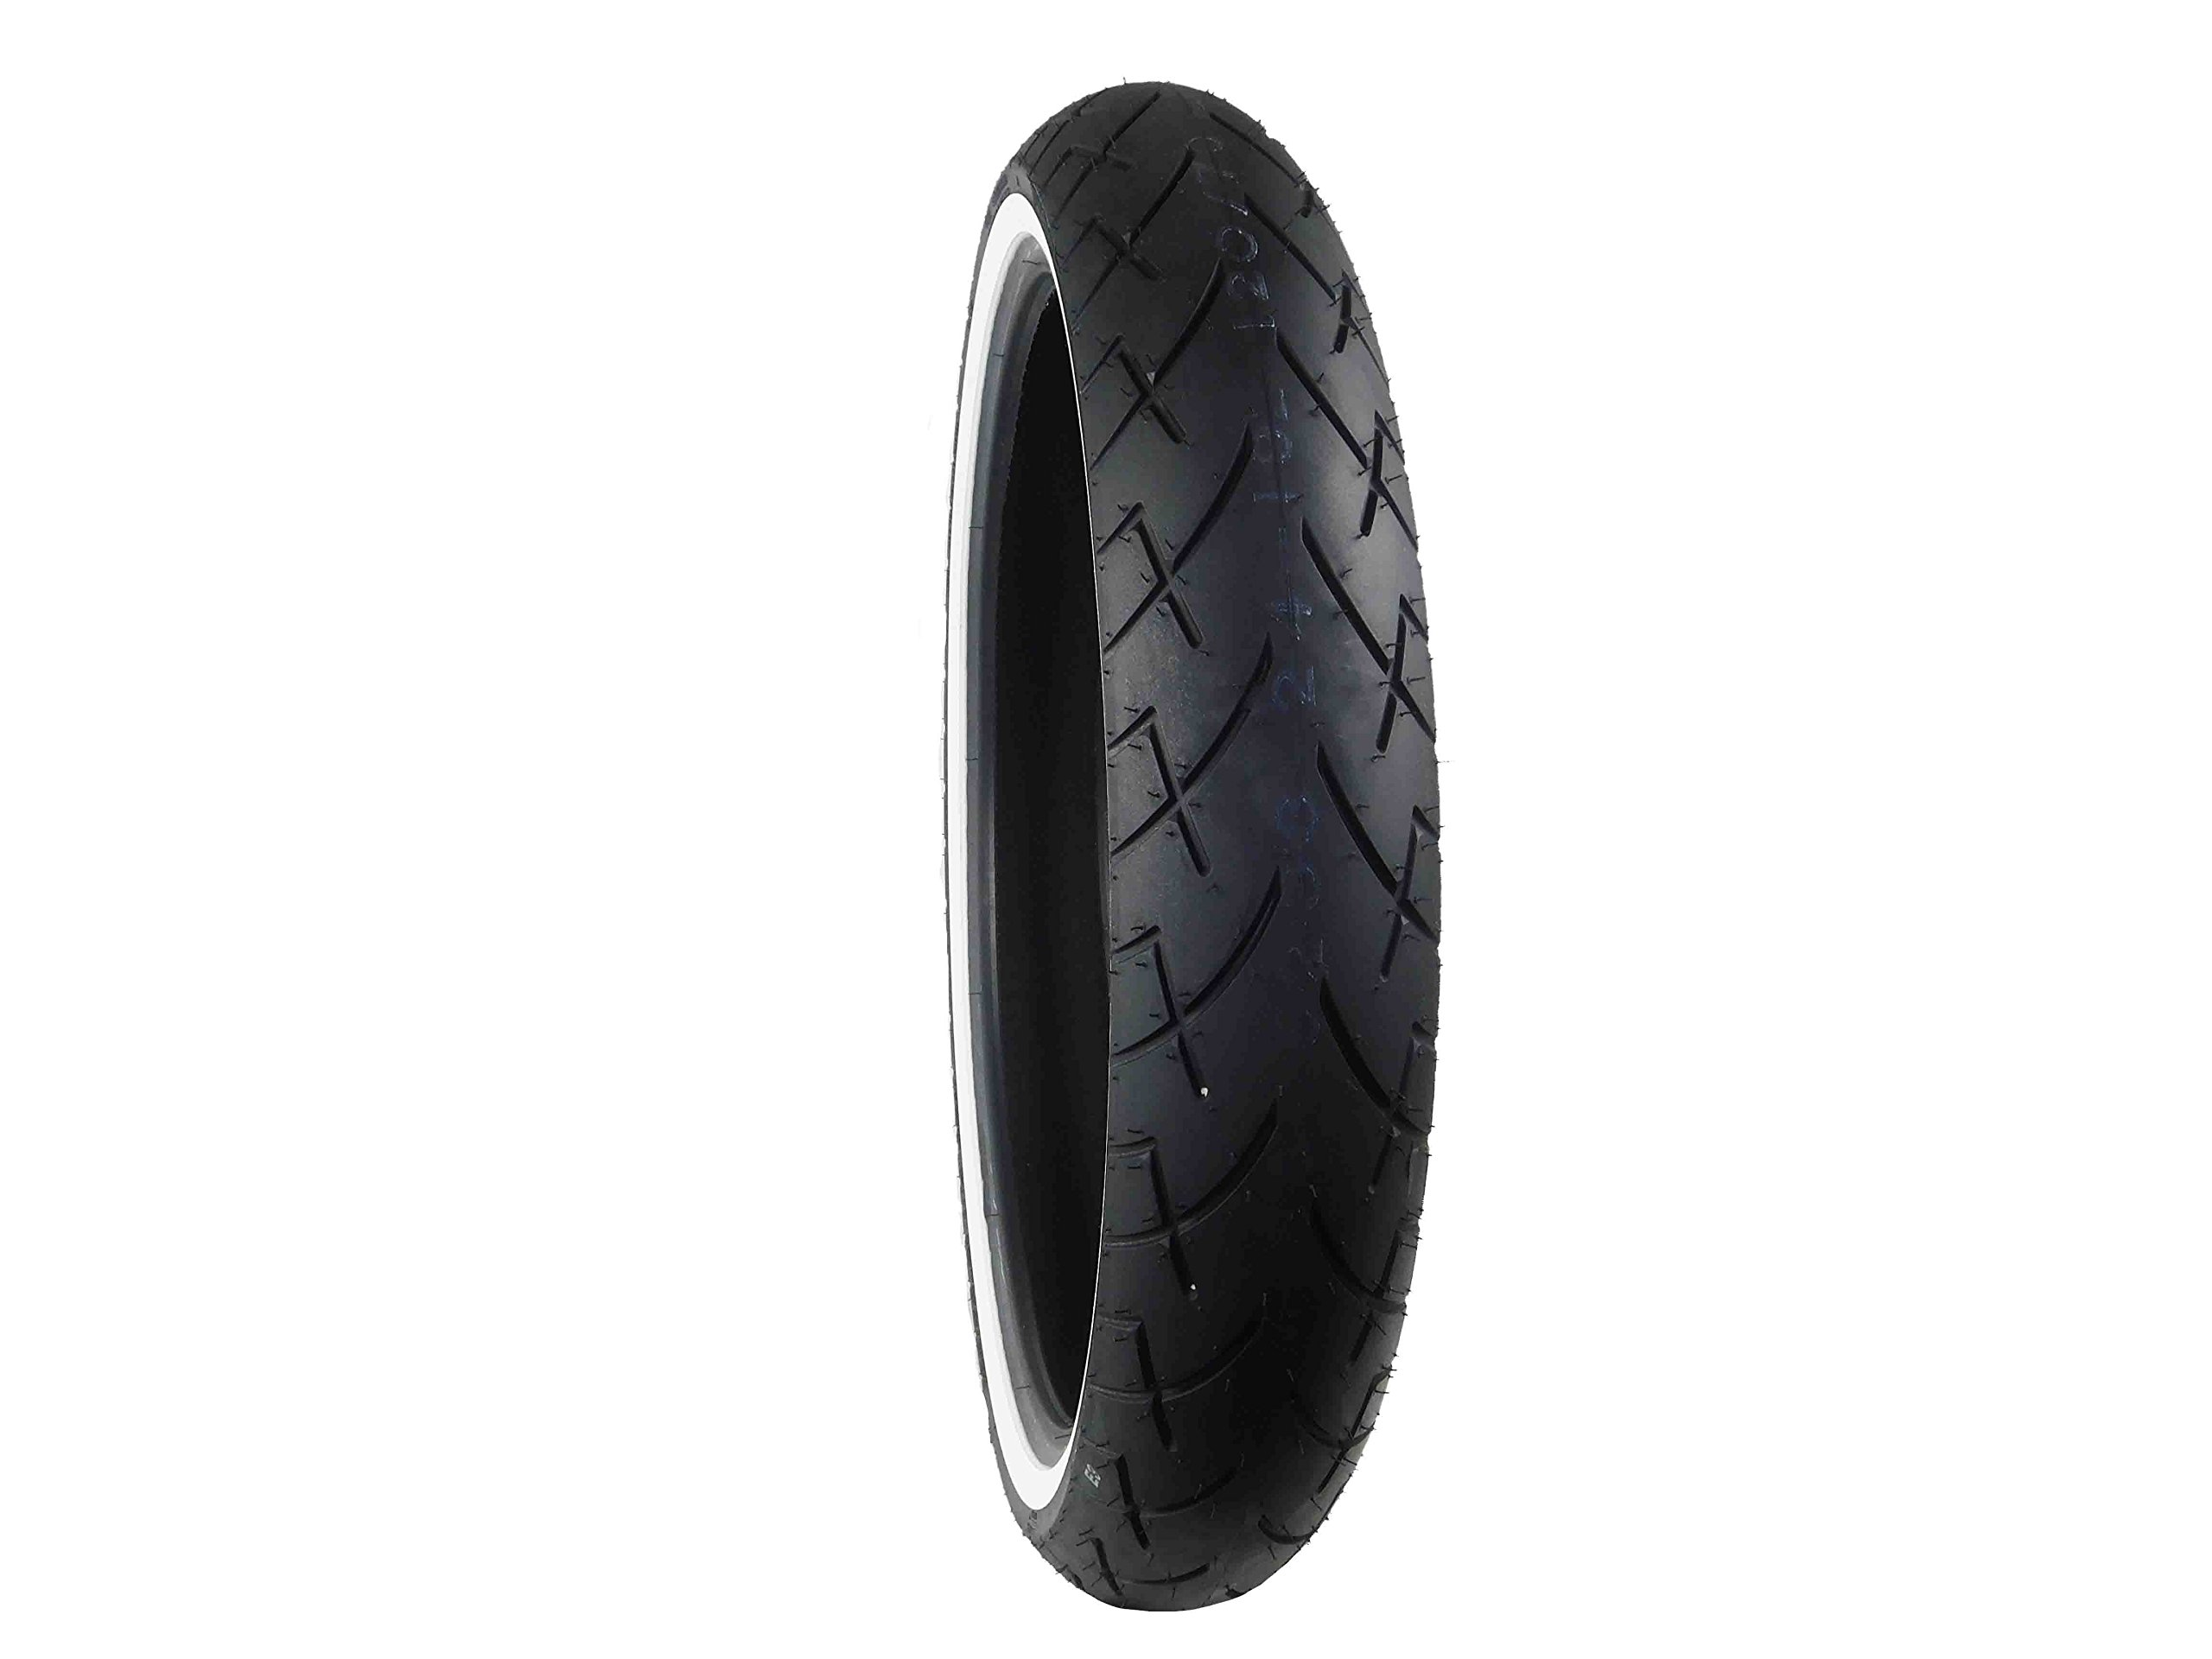 Full Bore M-66 Tour King Cruiser Motorcycle Tire (120/70-21)